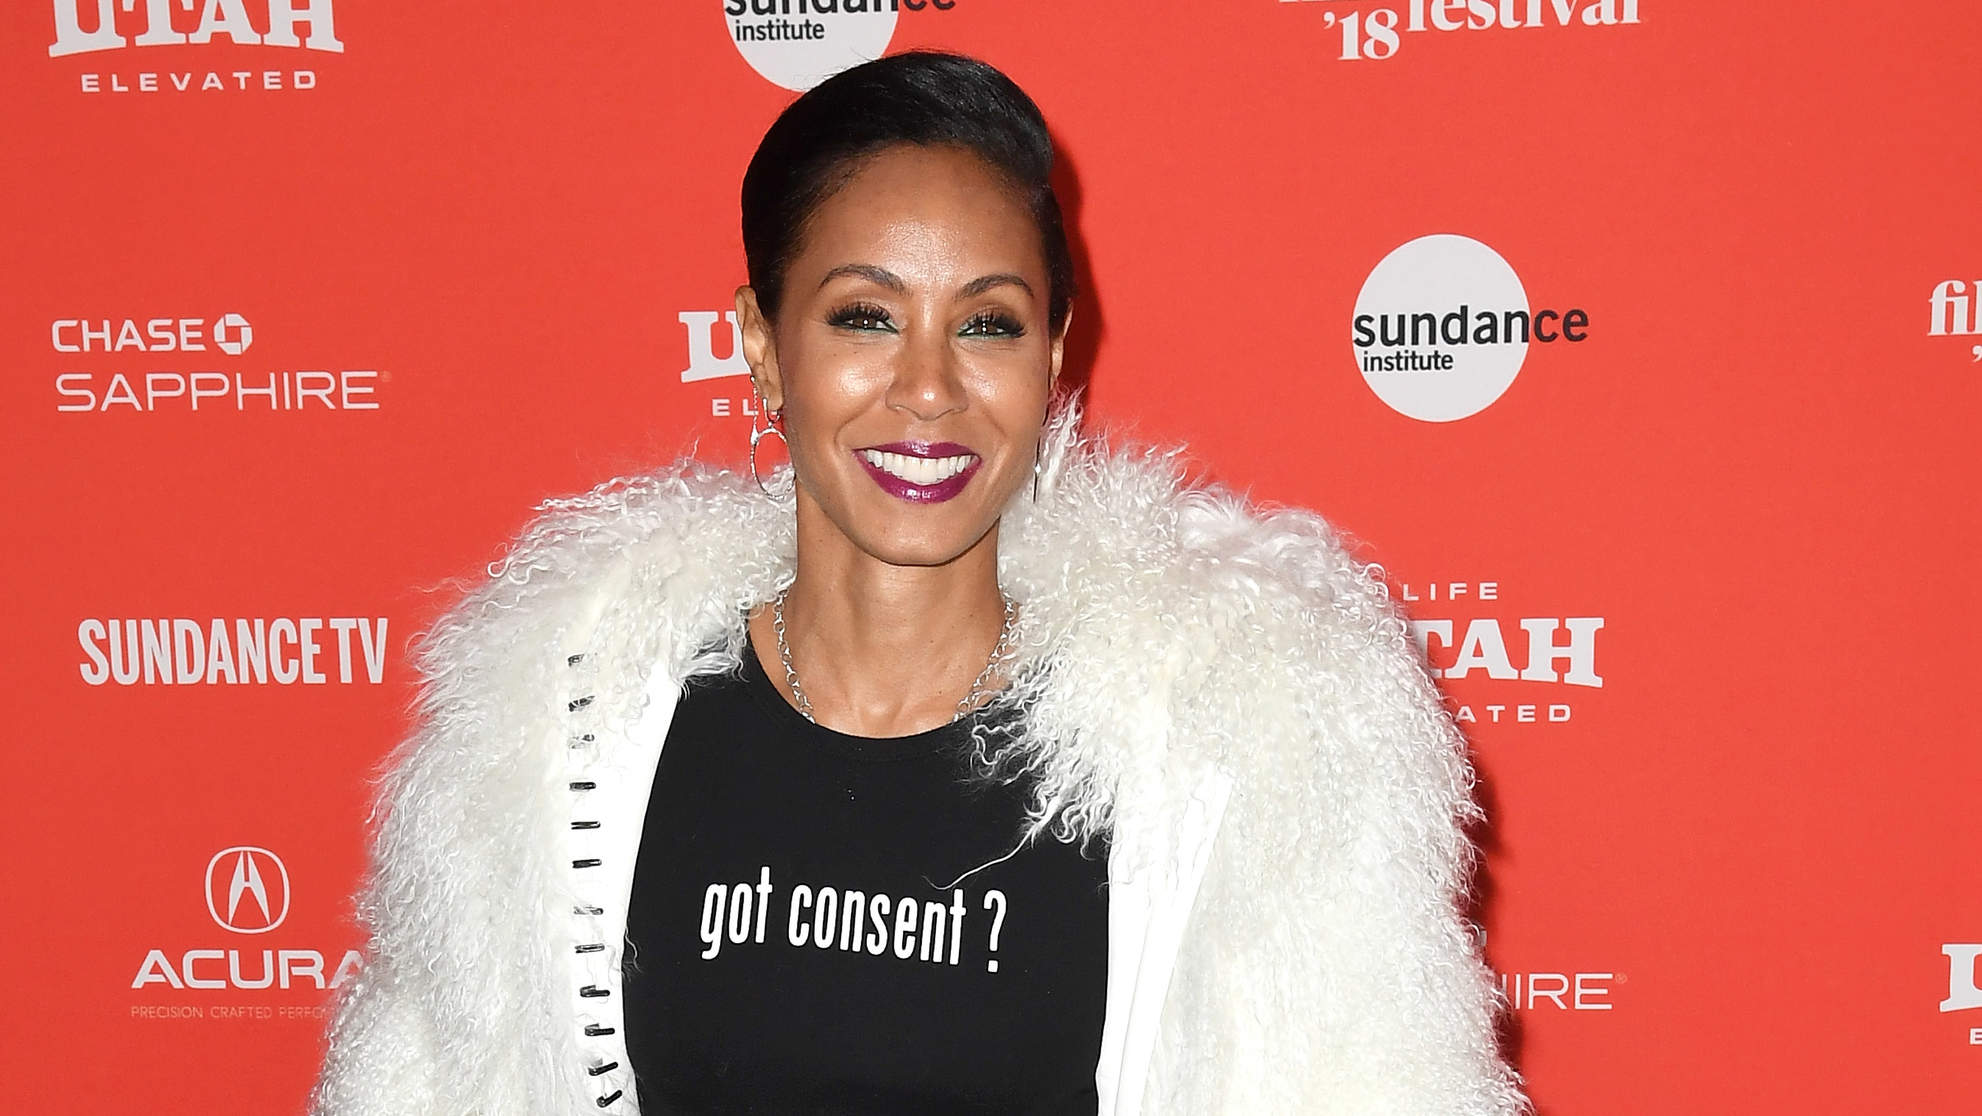 Jada Pinkett Smith Just Revealed She's Struggled With Sex Addiction—Here's What That Means